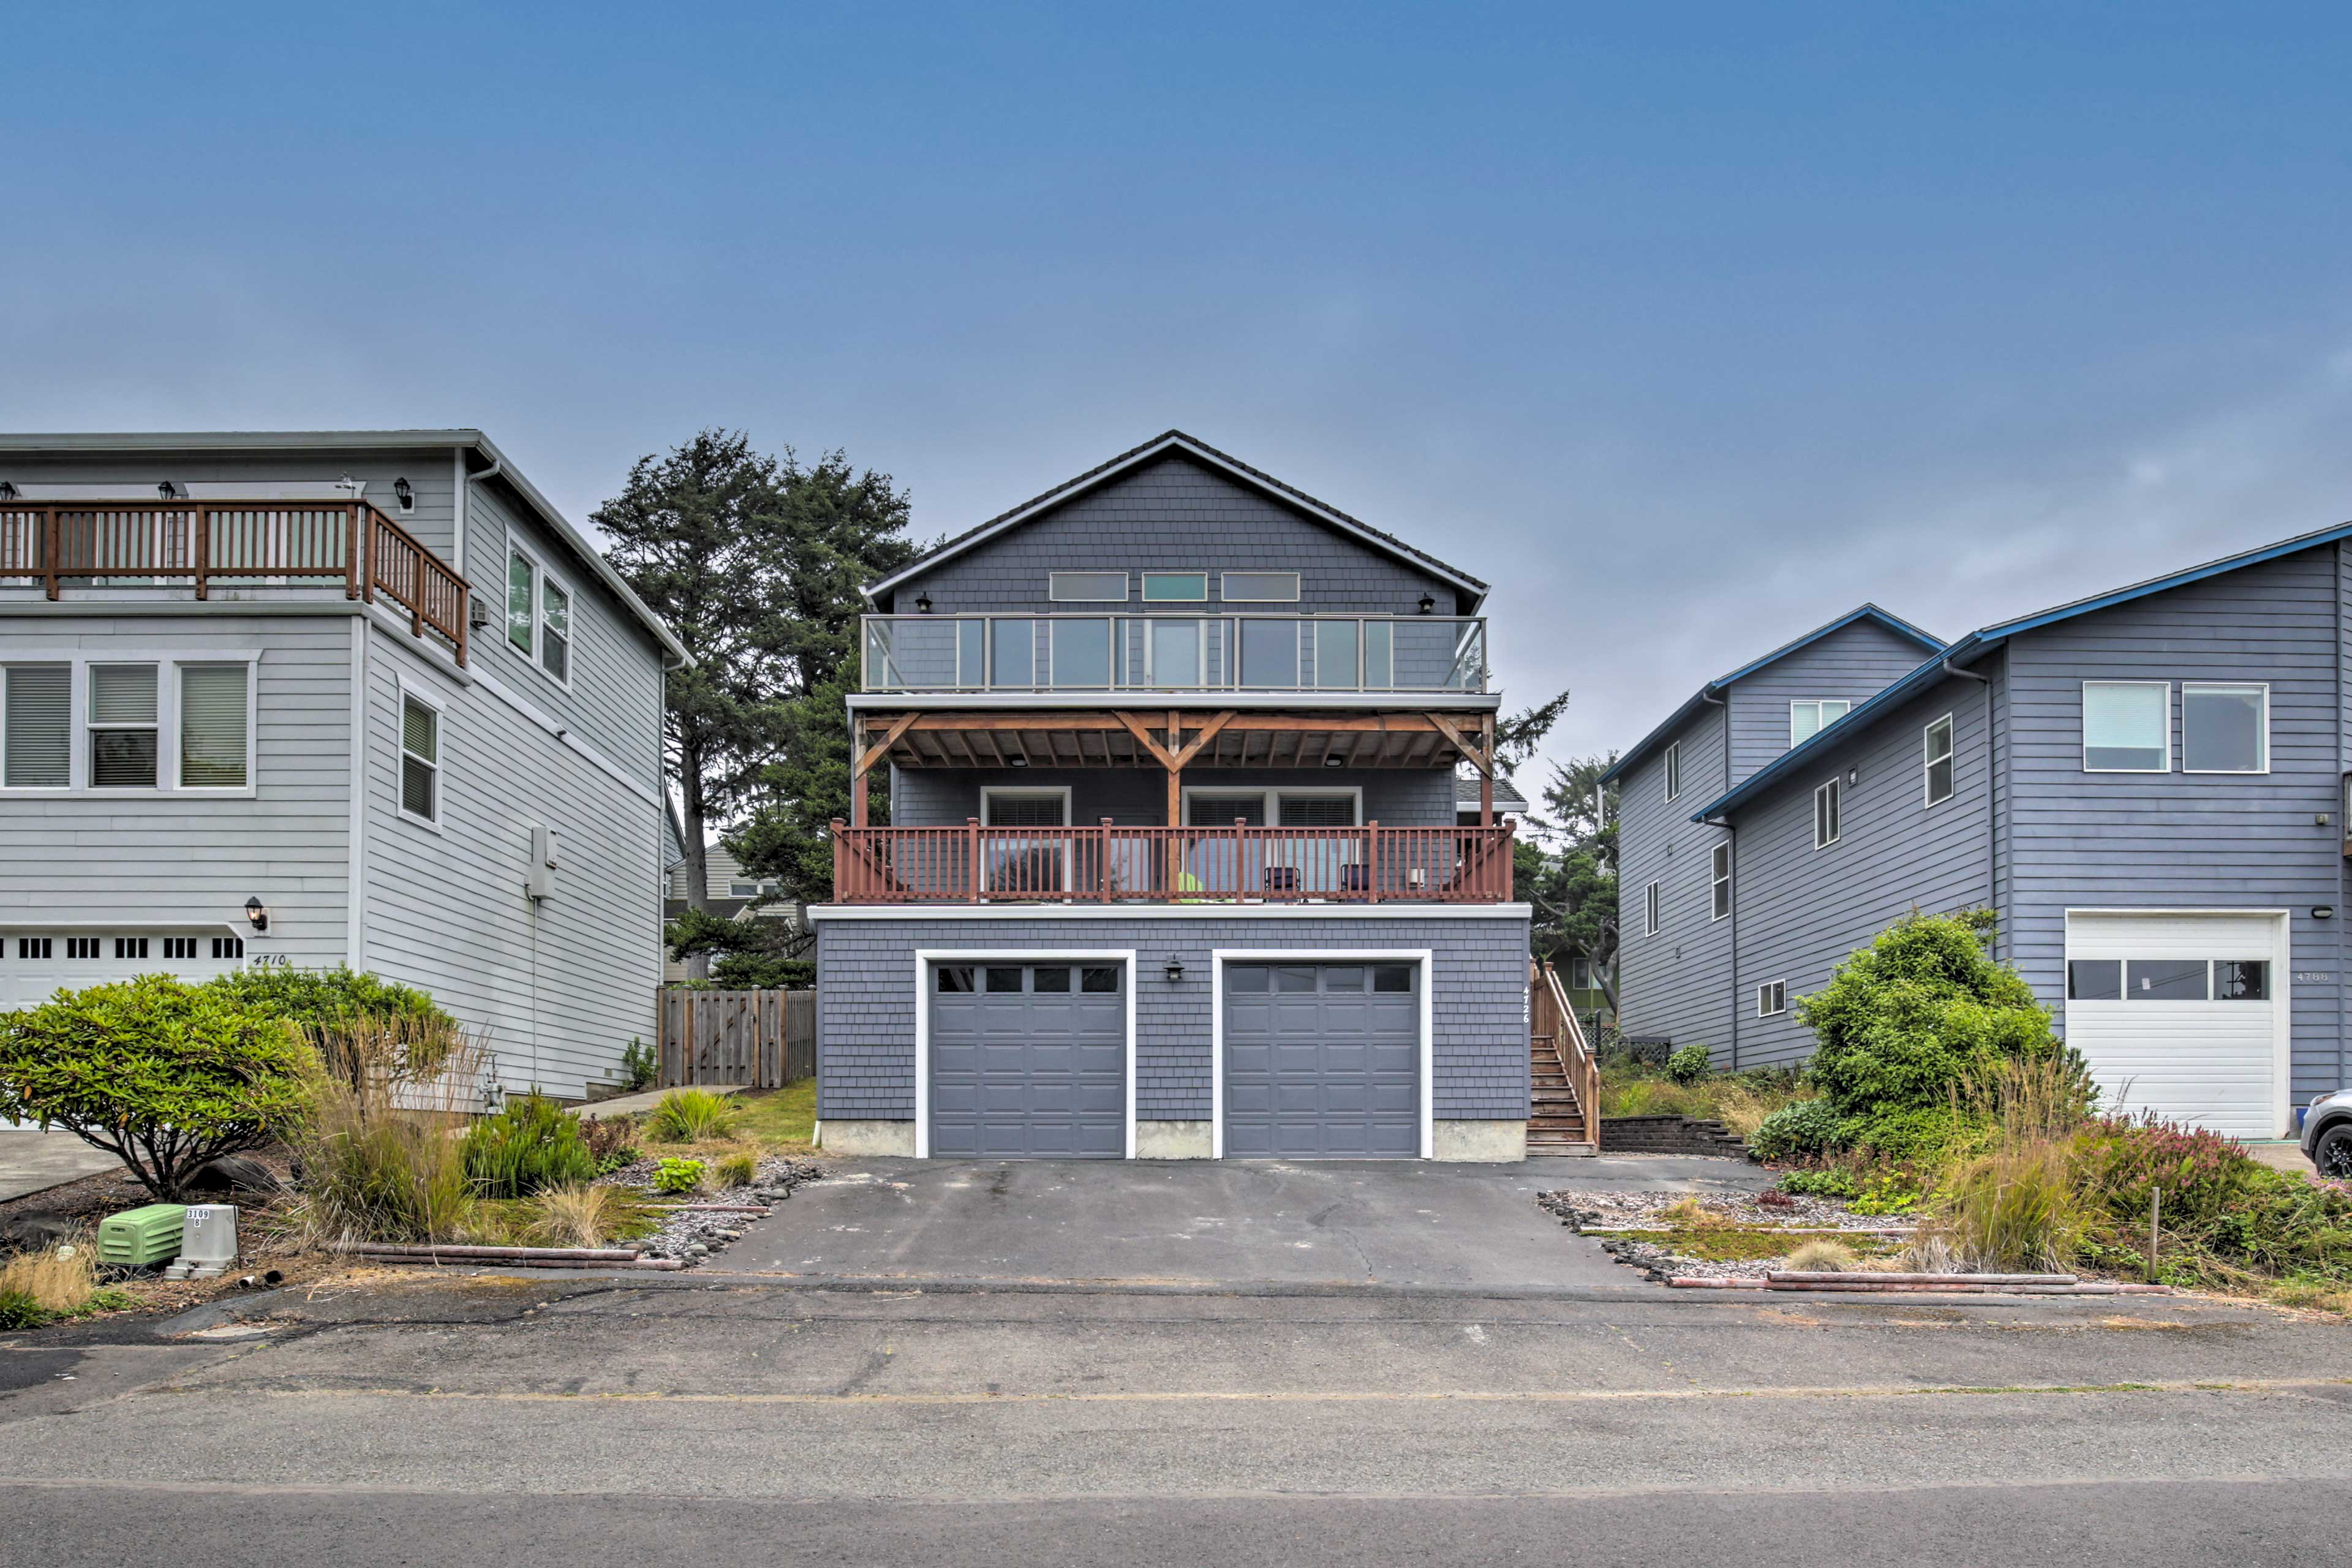 Ample parking is provided in the garage and driveway.